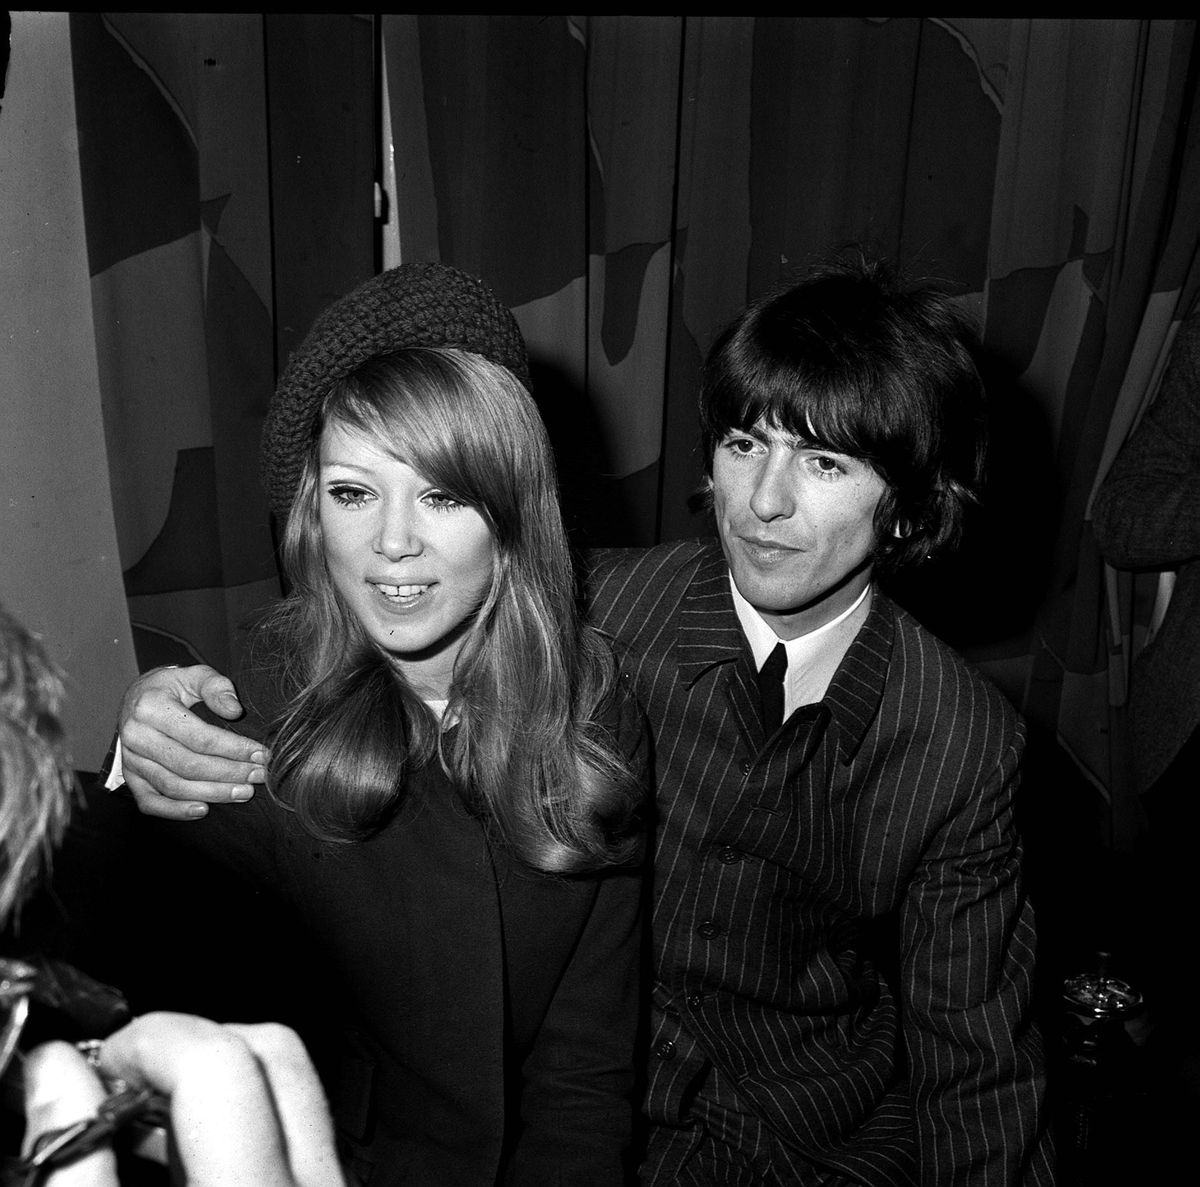 George Harrison and wife Pattie, with whom Clapton was obsessed.